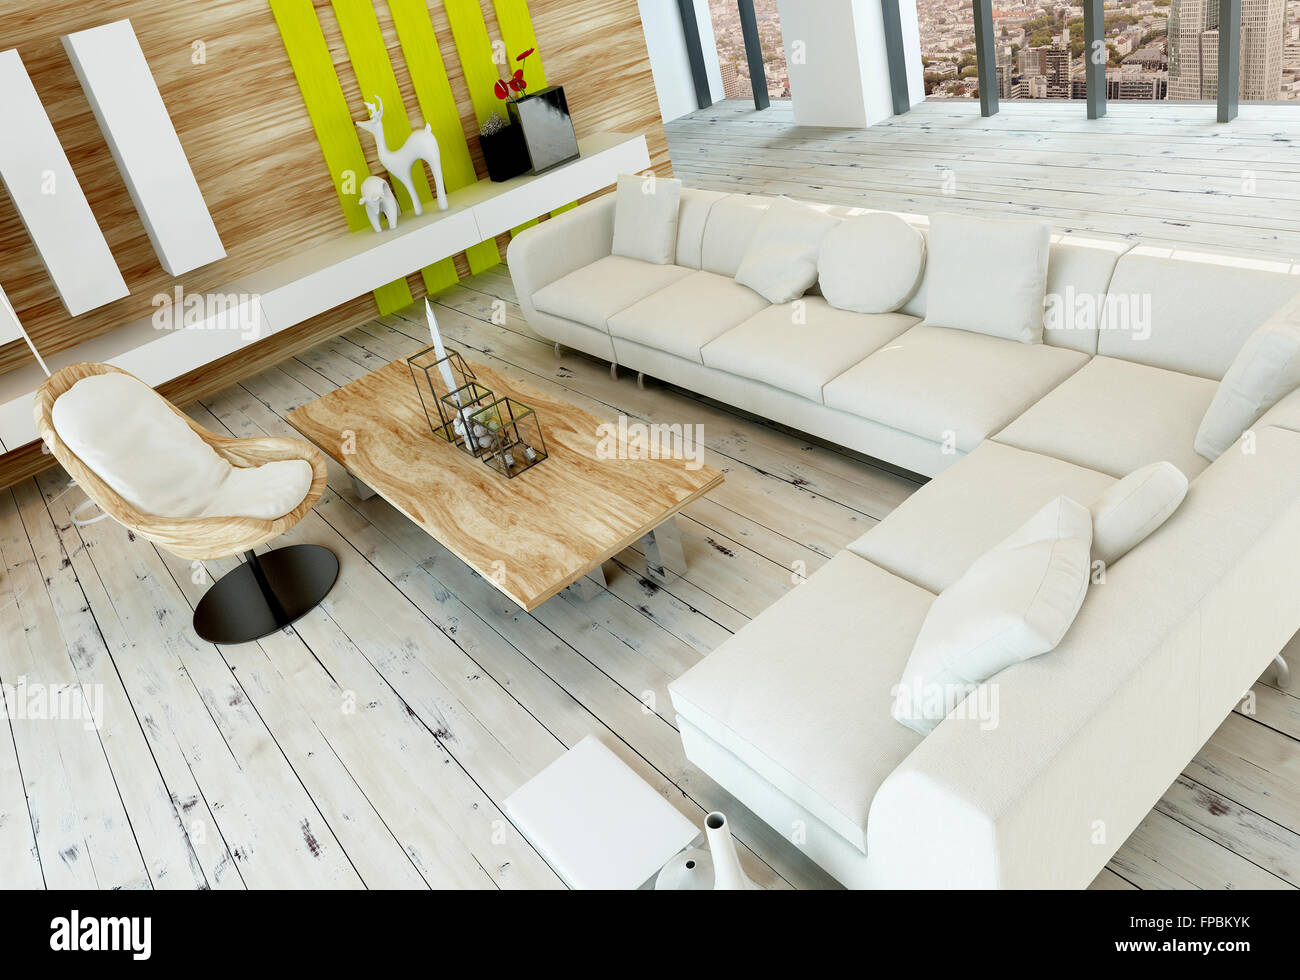 High angle view of a rustic living room interior with white painted ...